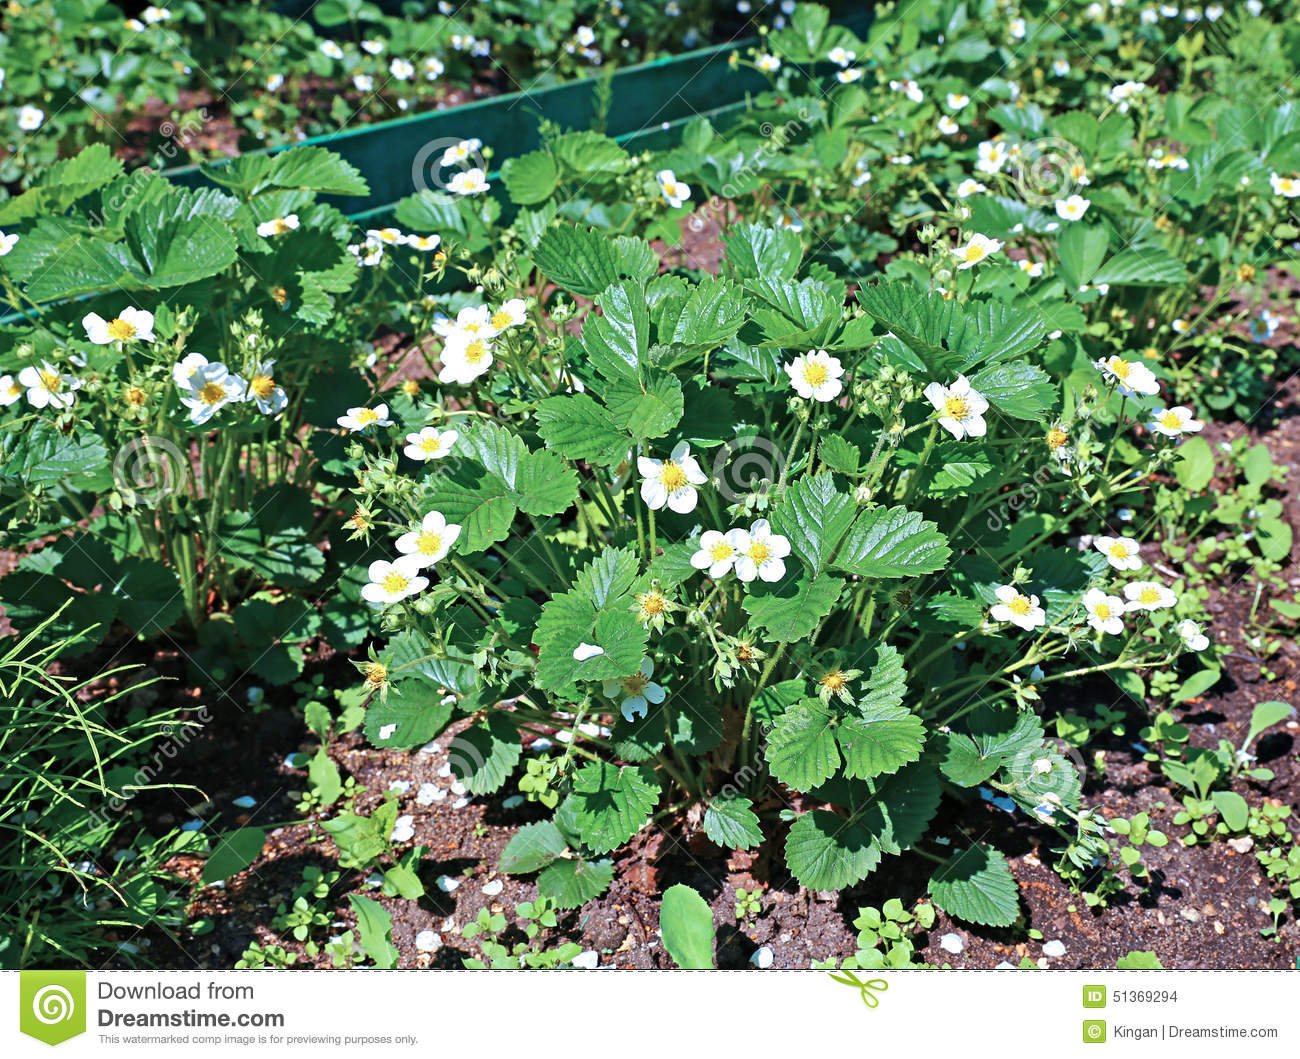 Flowering strawberry plant on the gardenbed stock photo image 51369294 - Plant strawberries spring ...